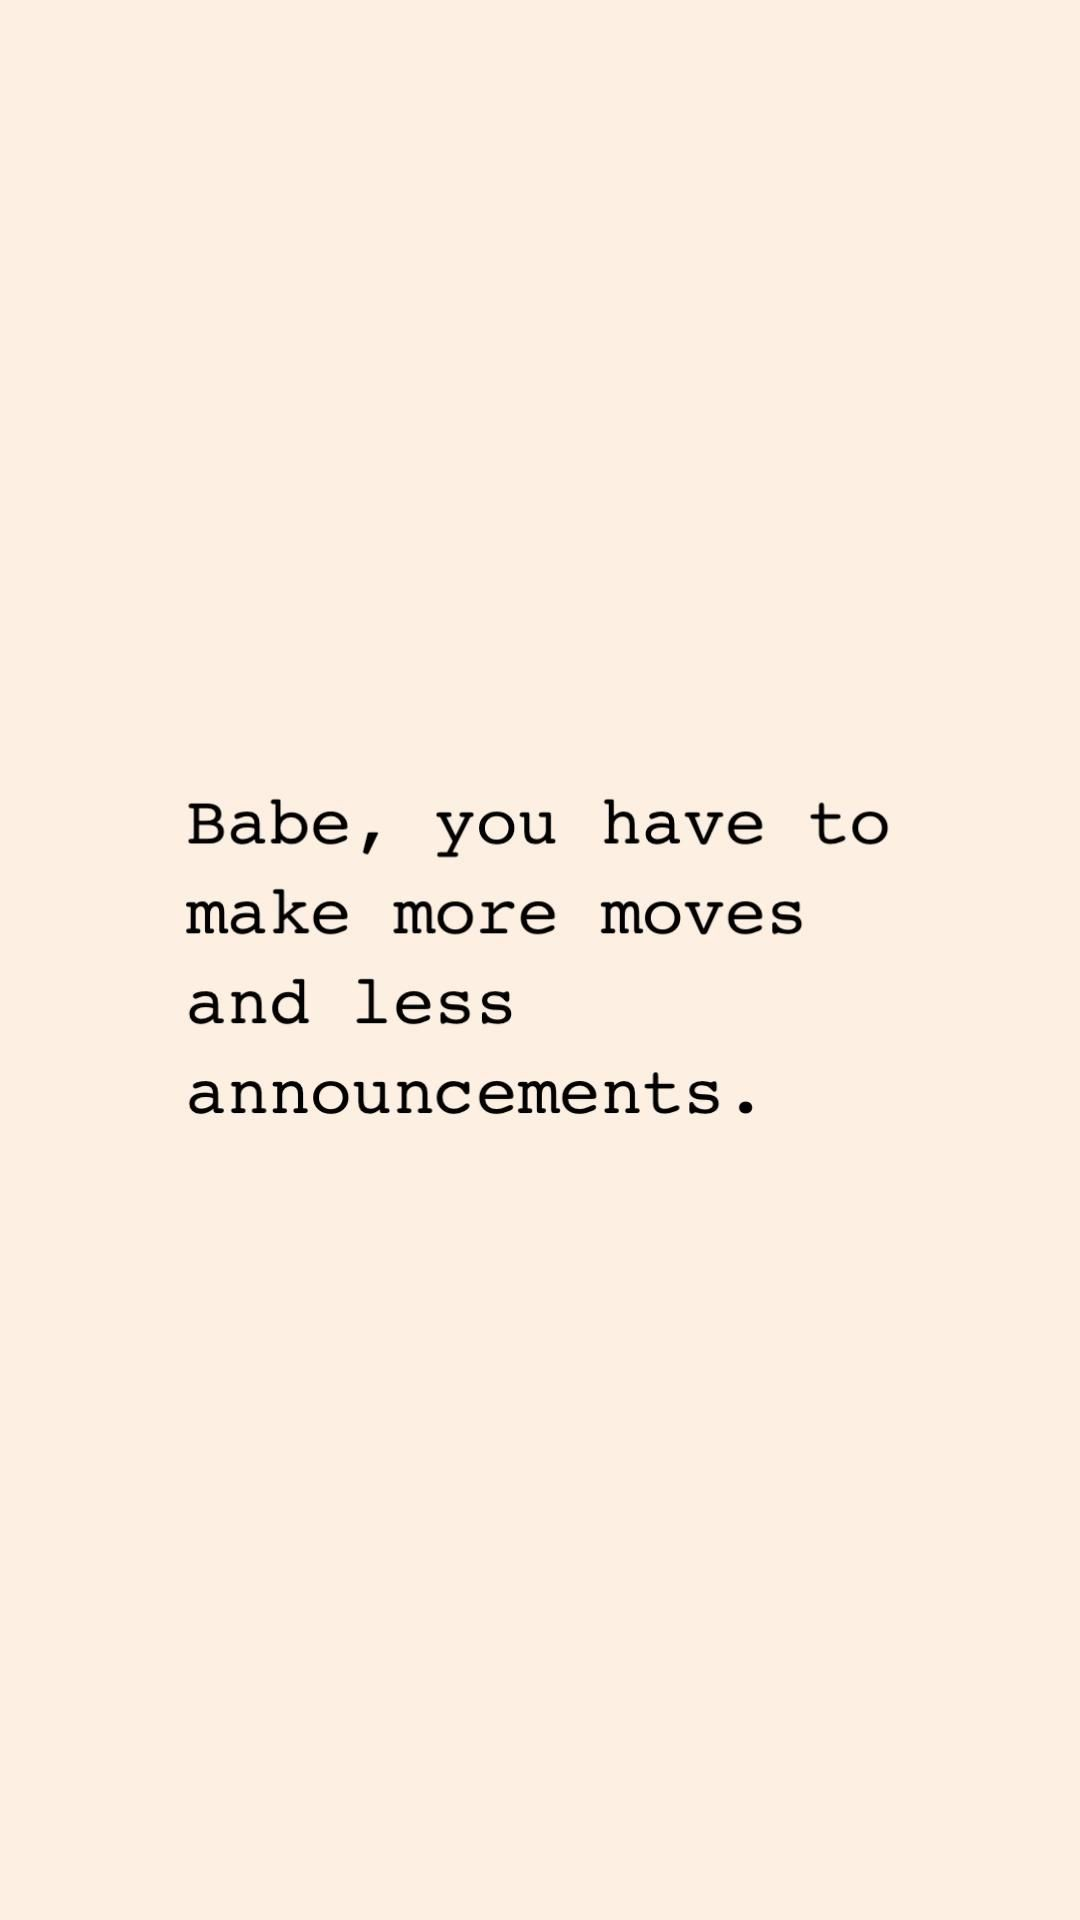 Make more moves and less announcements.